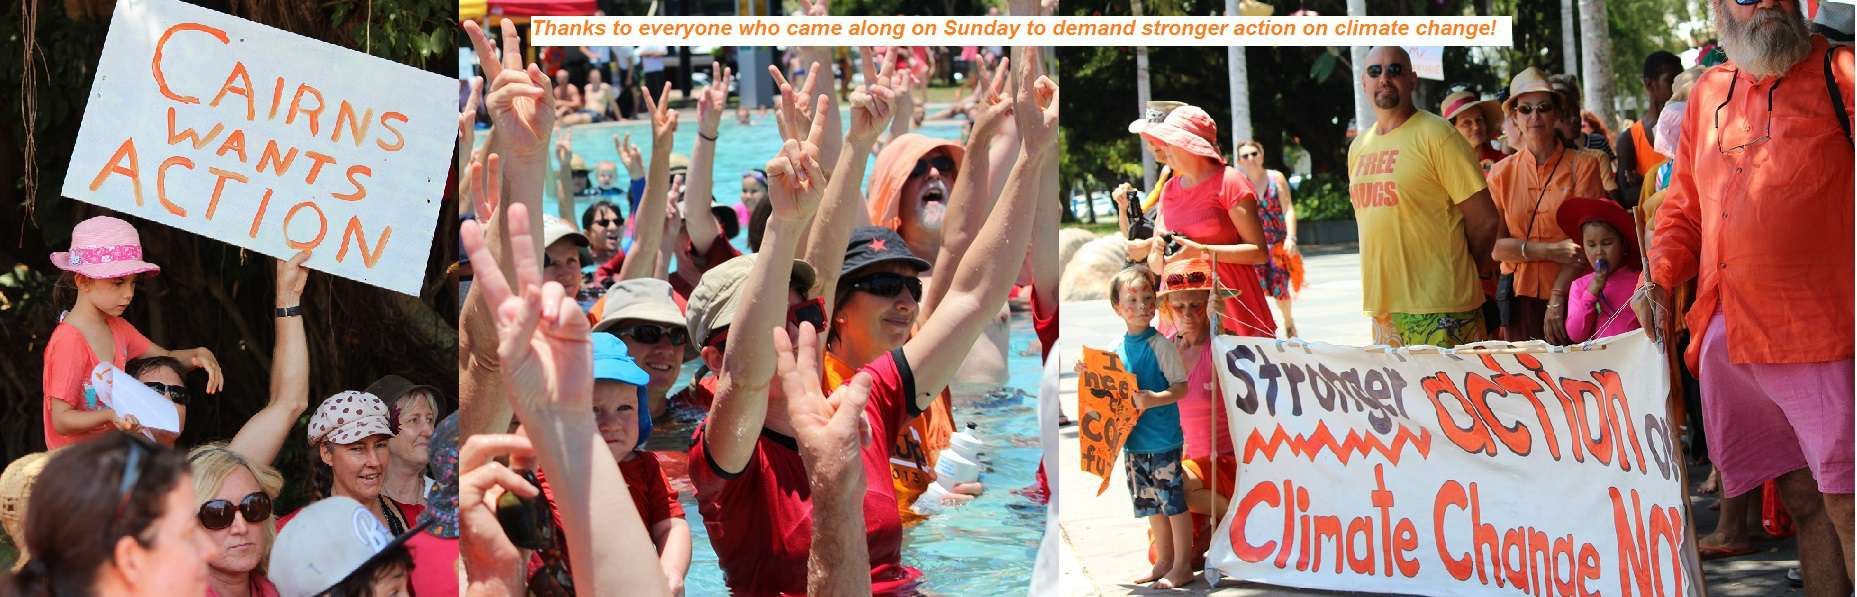 Cairns calls for climate action – Global Cooling Party 2013